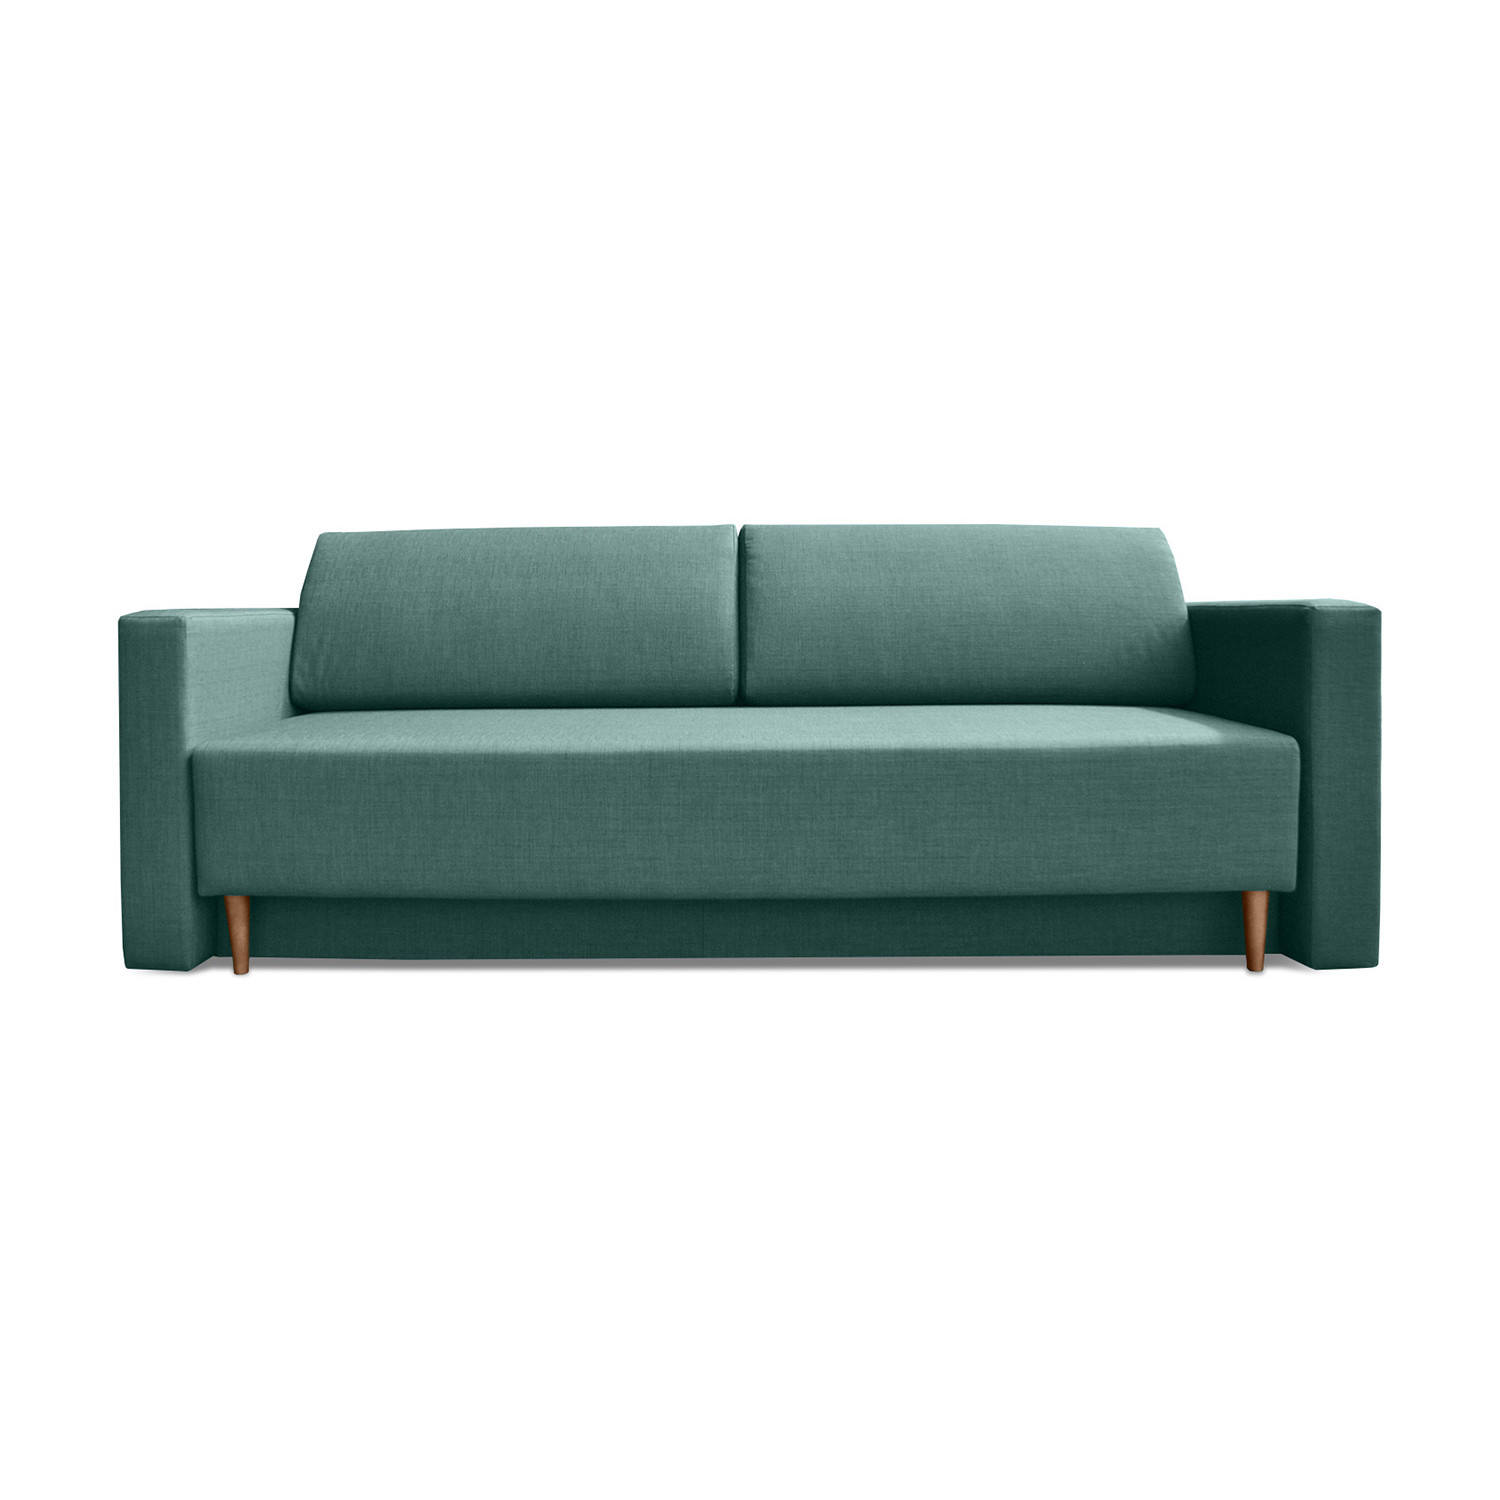 Super Dublin Sofa Bed Sleeper Capri Teva Home Touch Of Modern Gmtry Best Dining Table And Chair Ideas Images Gmtryco